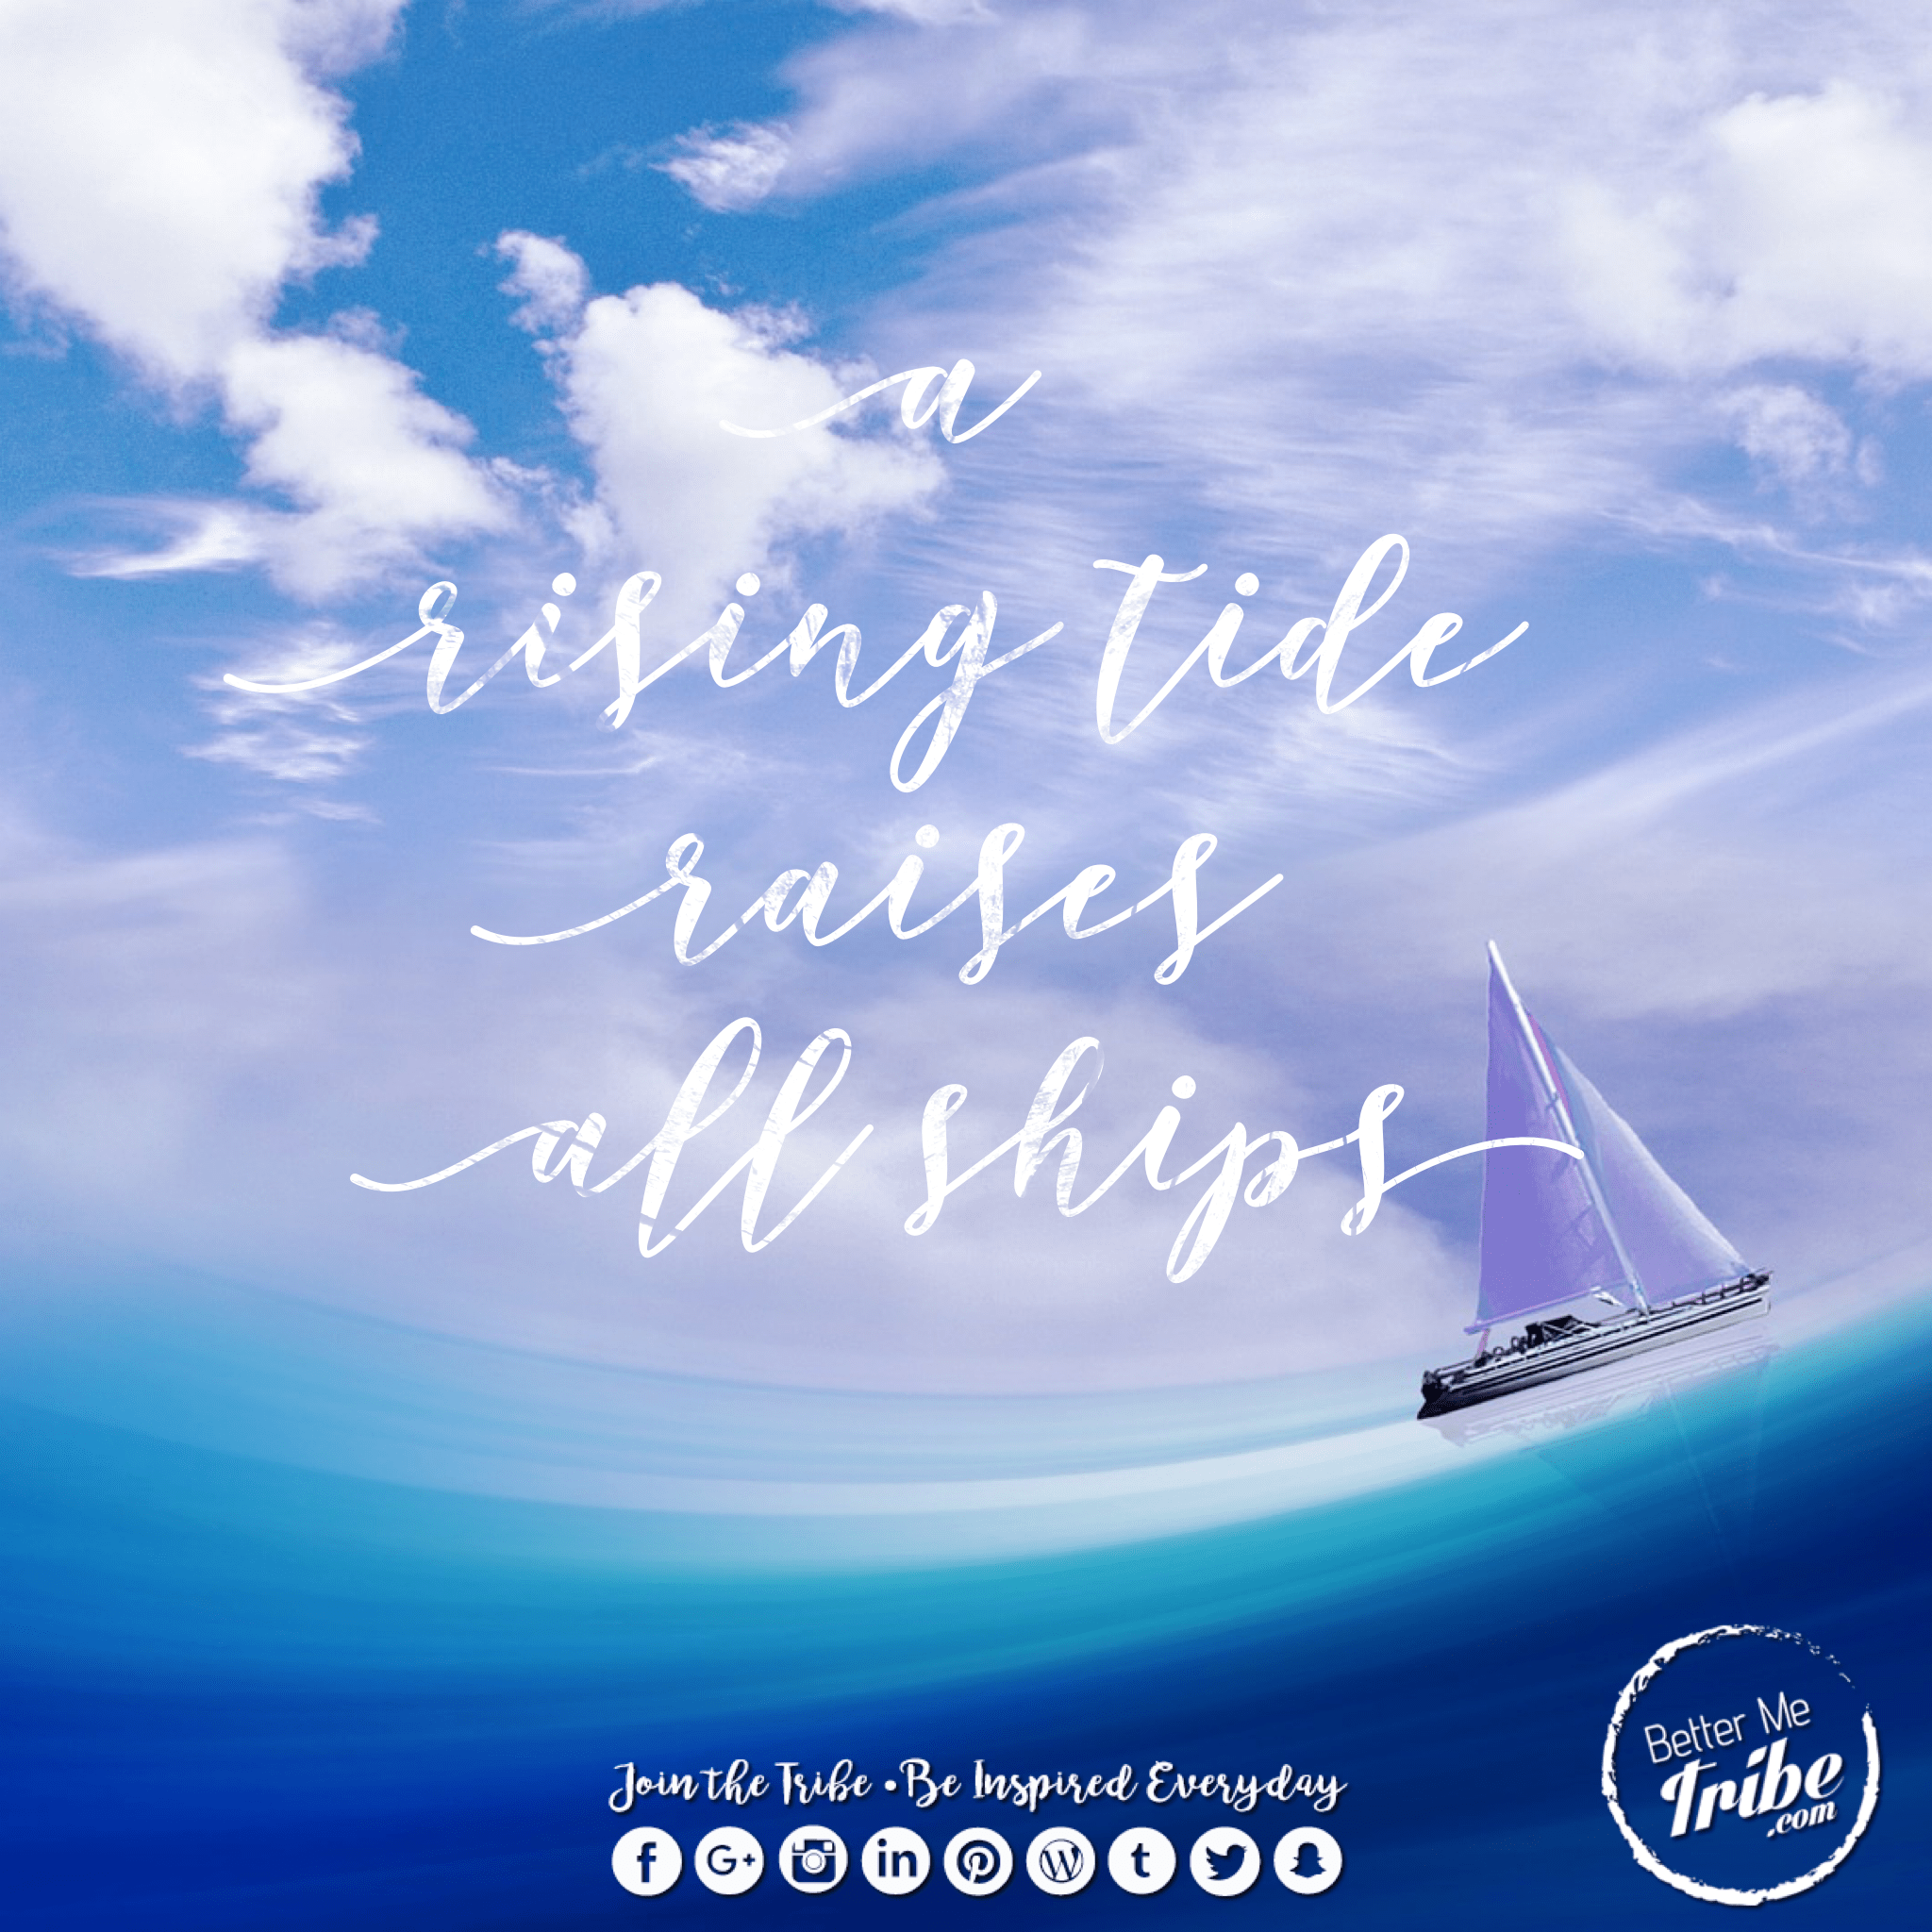 Rising tide raises all ships